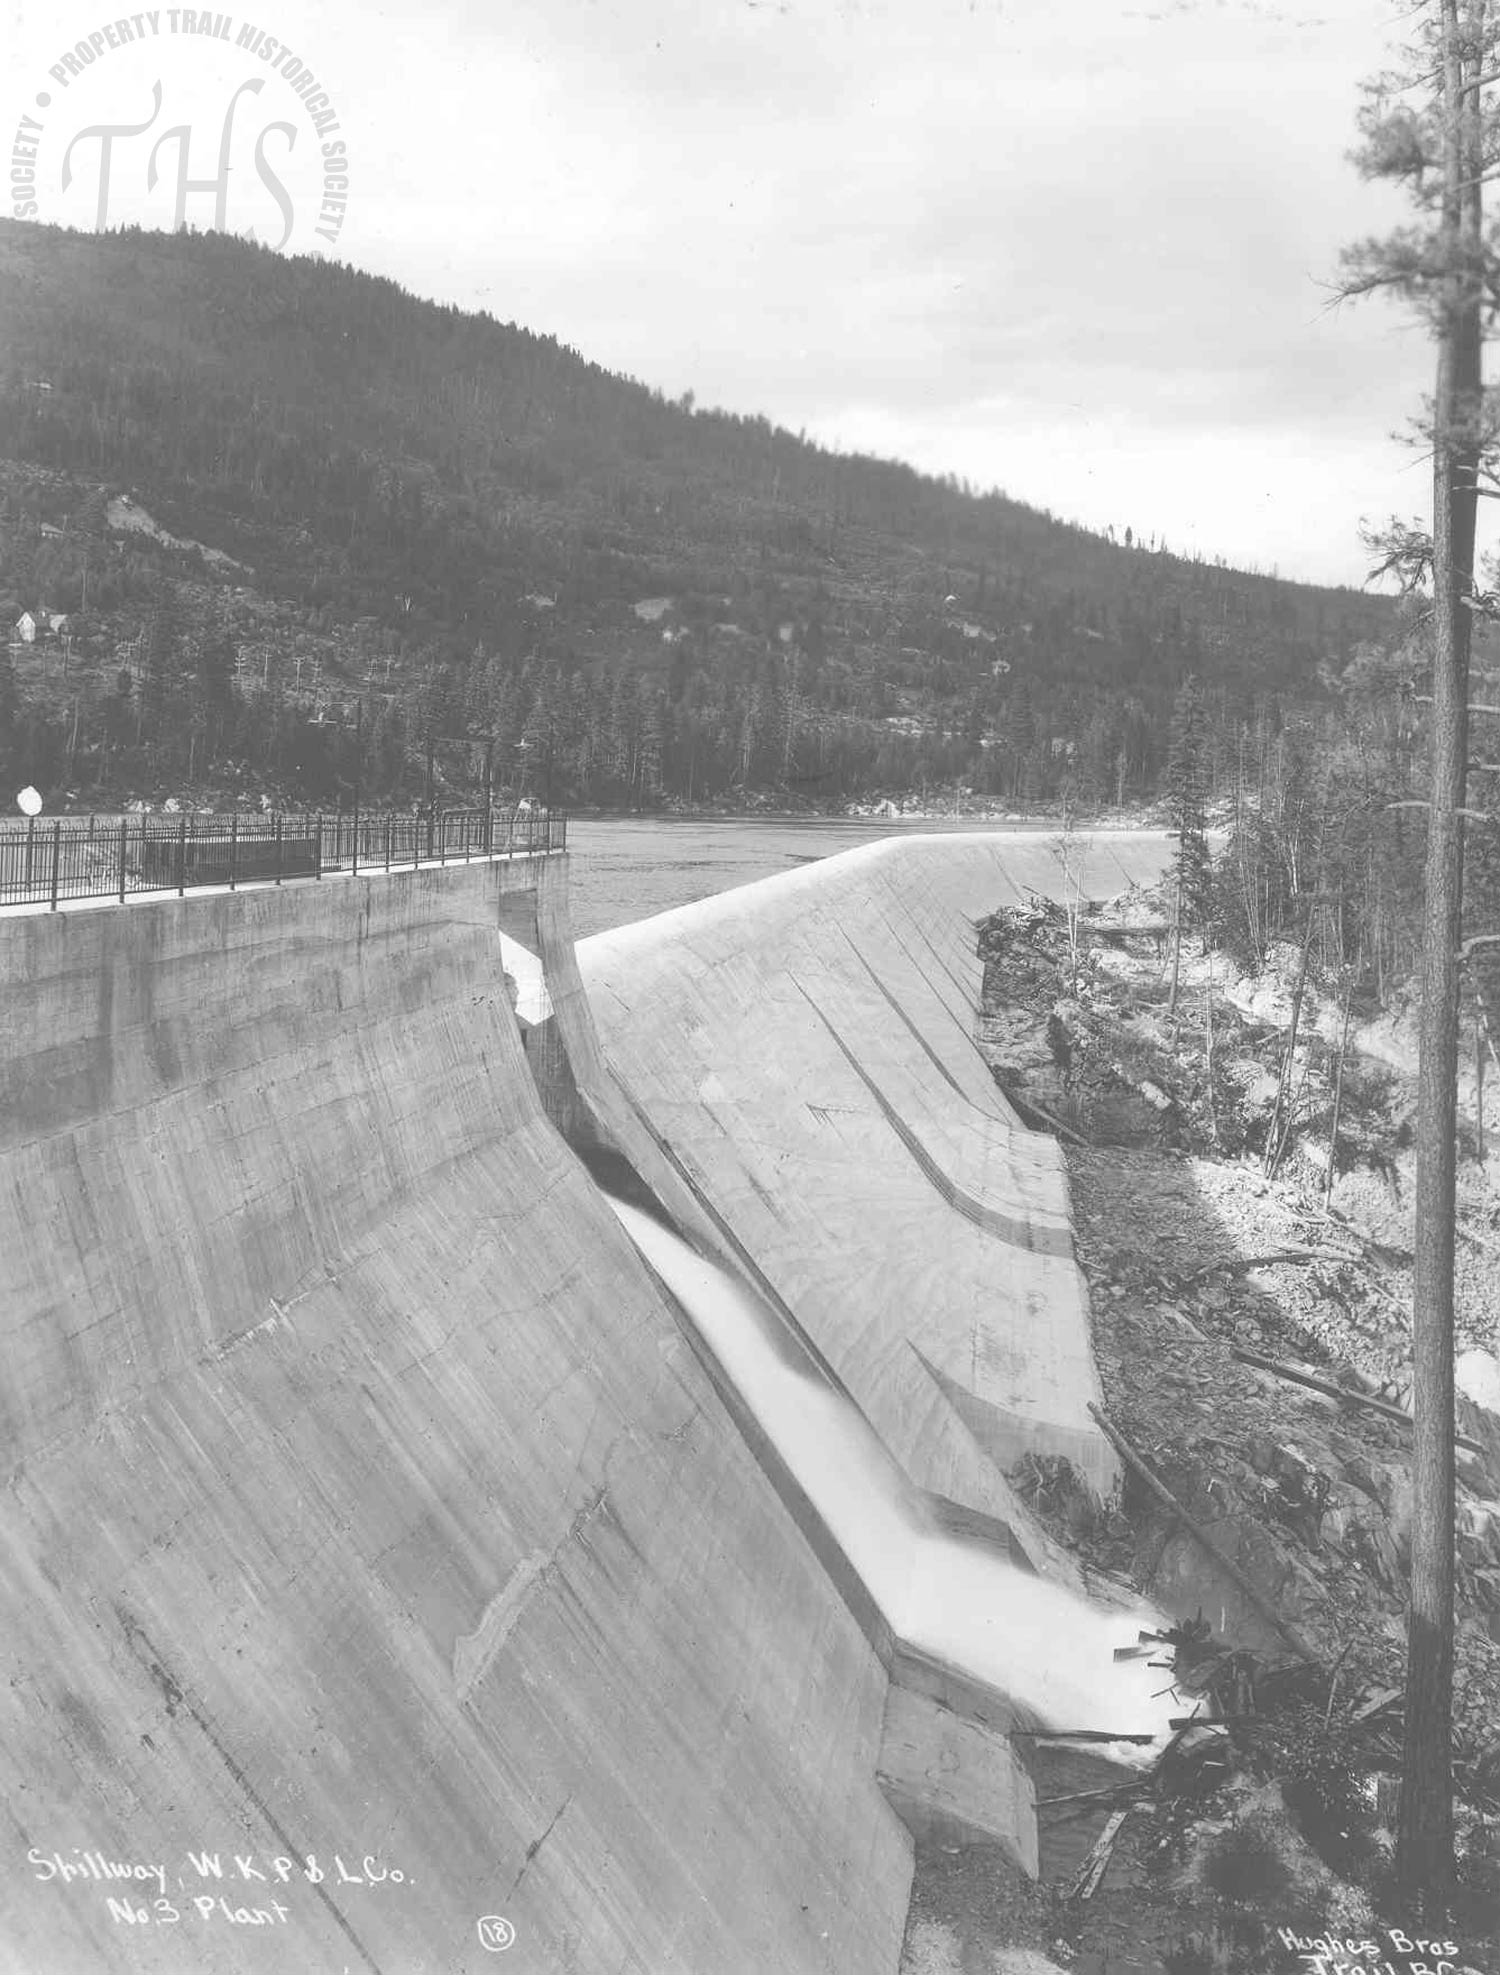 Spillway, South Slocan plant (Hughes) - 1930